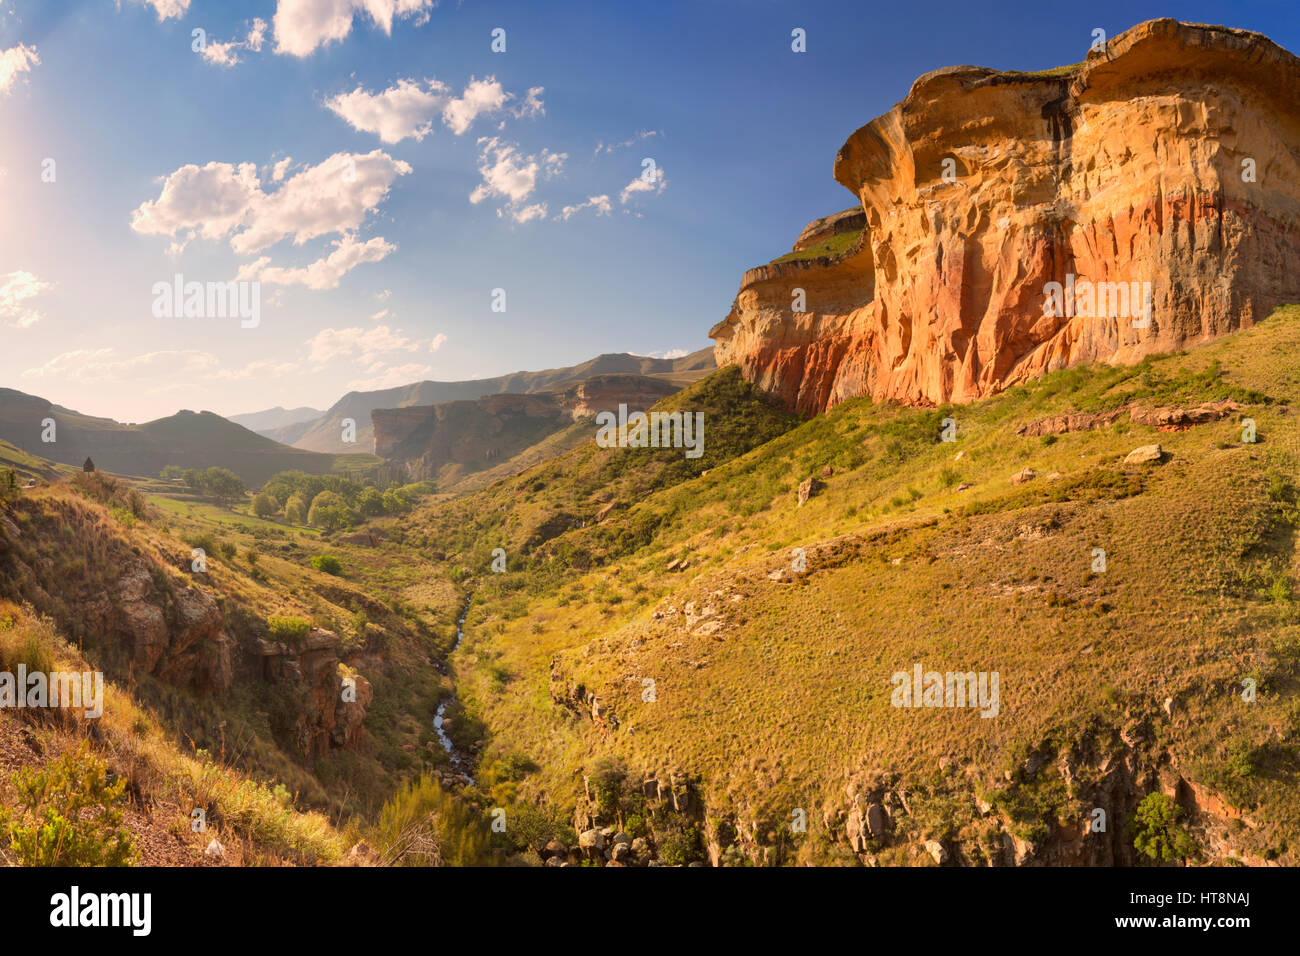 The Golden Gate Highlands National Park in South Africa photographed in late afternoon sunlight. - Stock Image